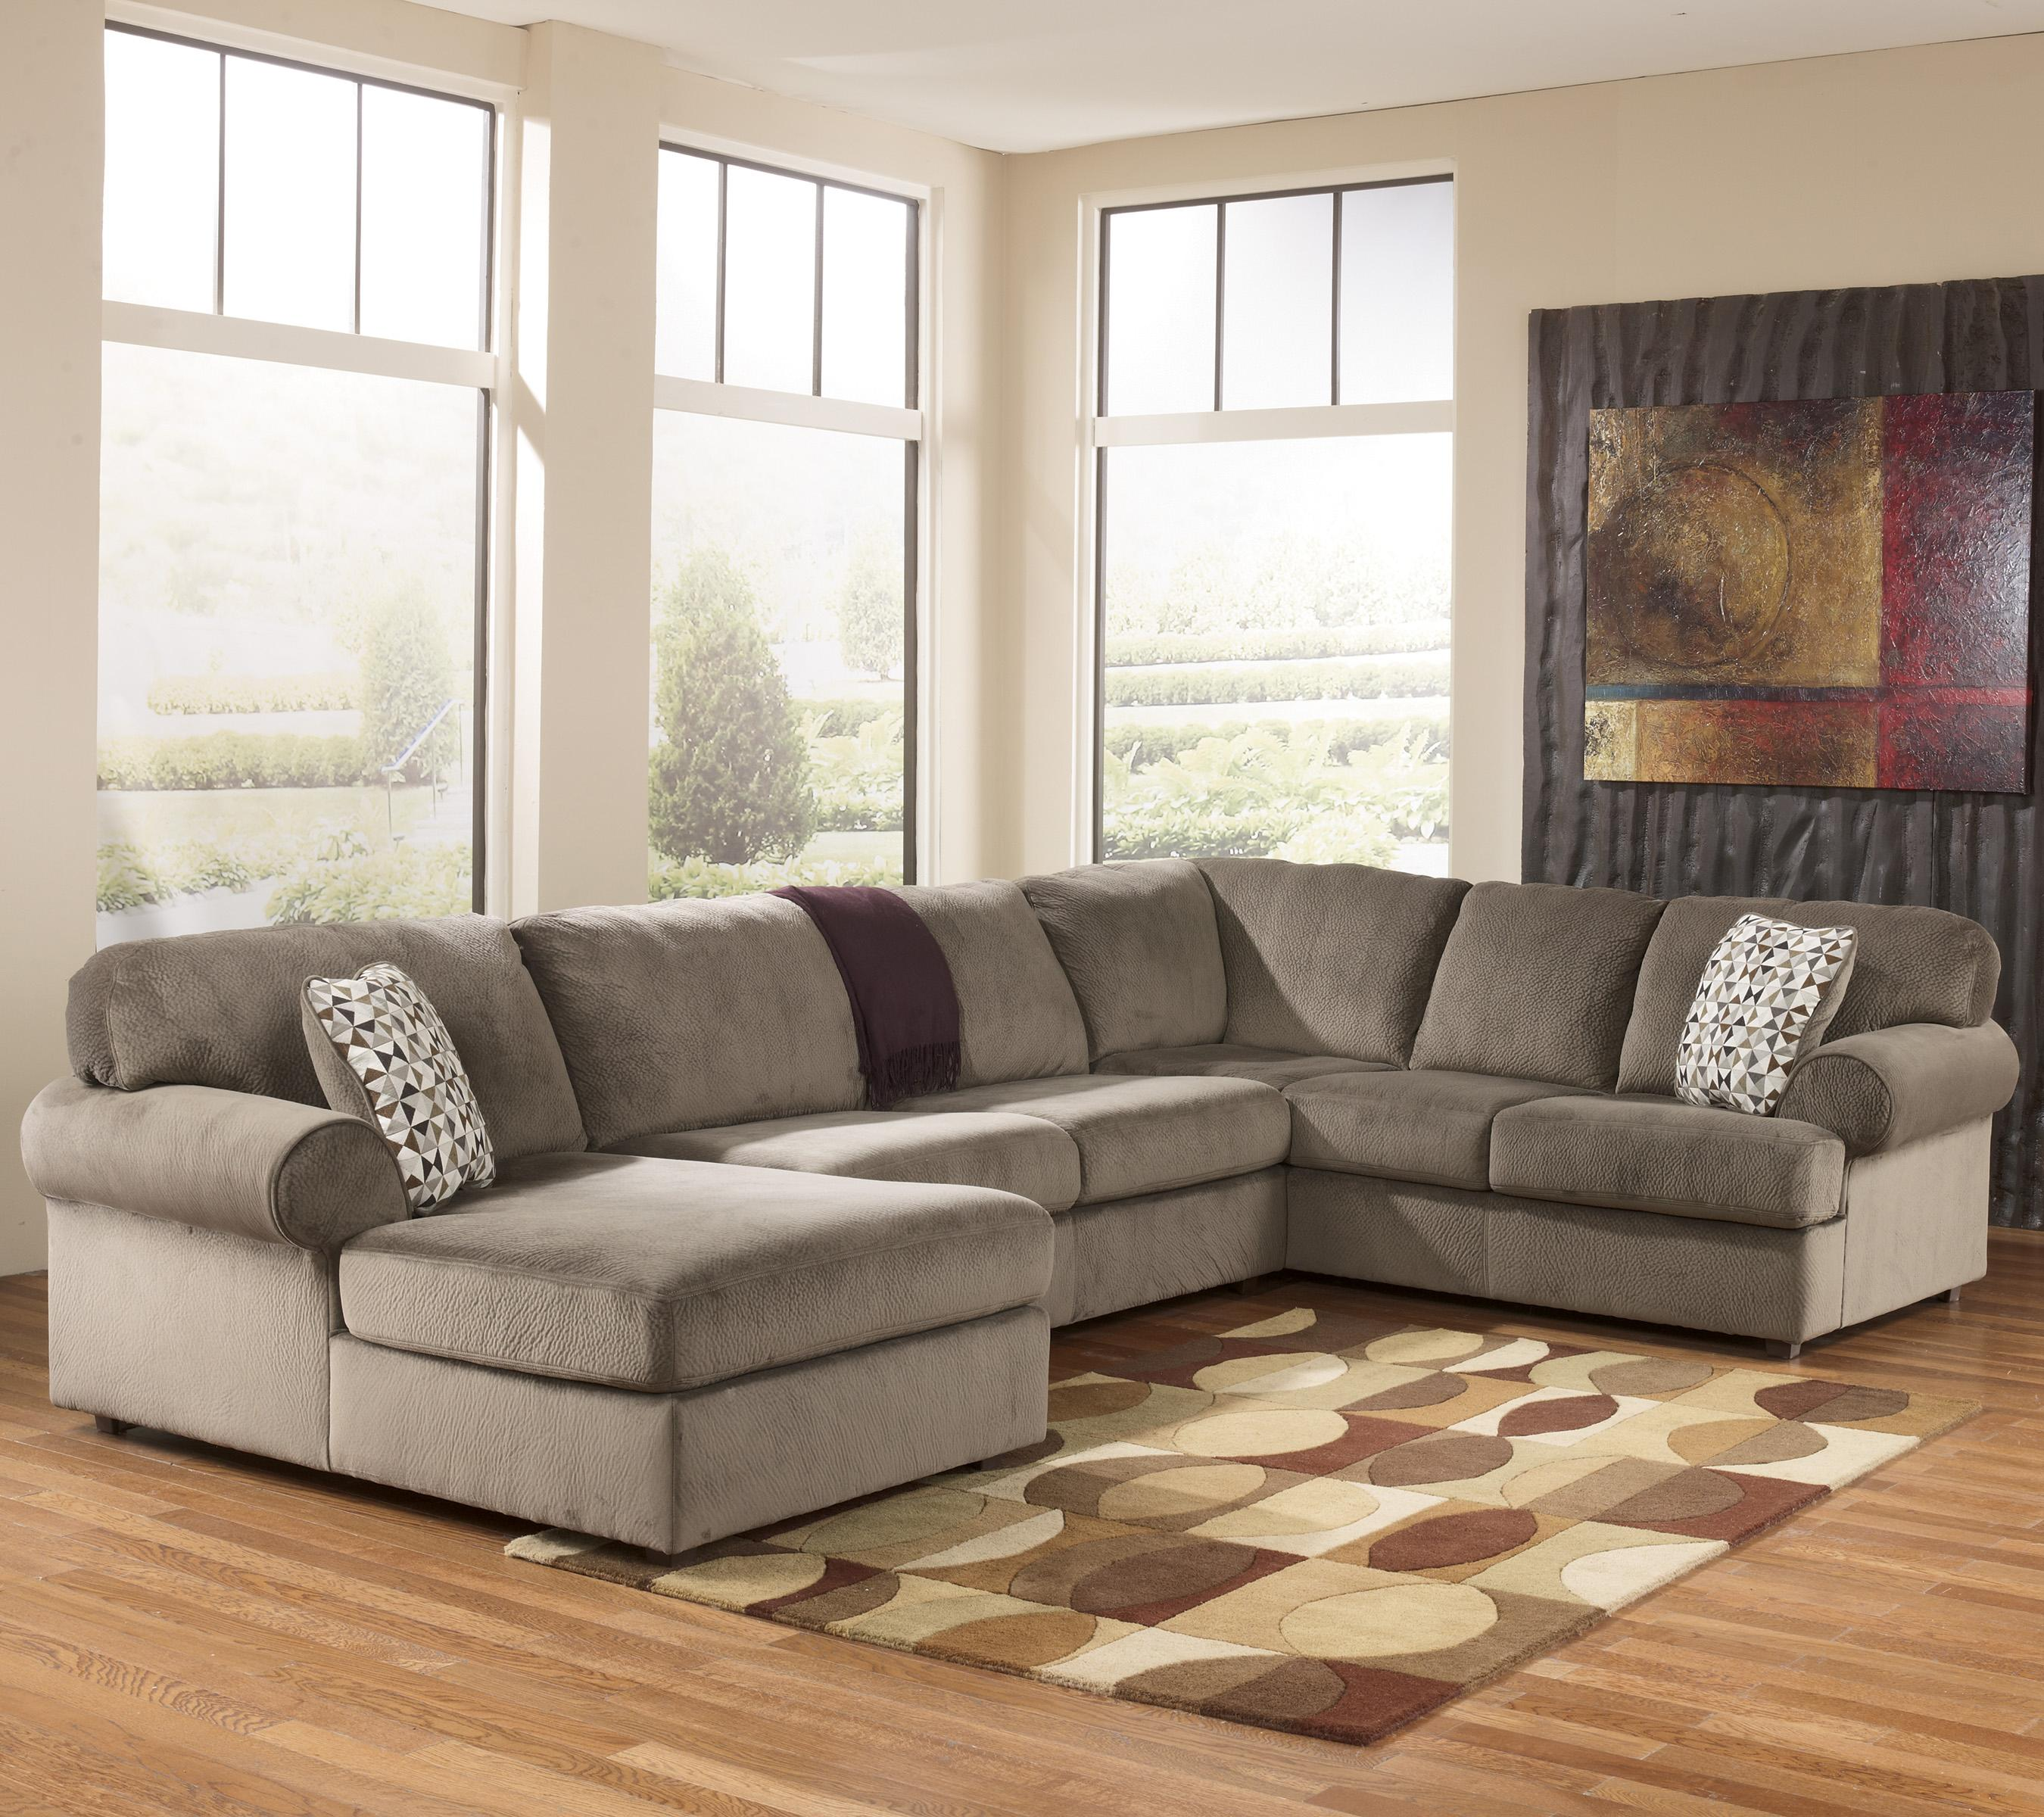 Ashley Furntiure: Casual Sectional Sofa With Left Chaise By Signature Design